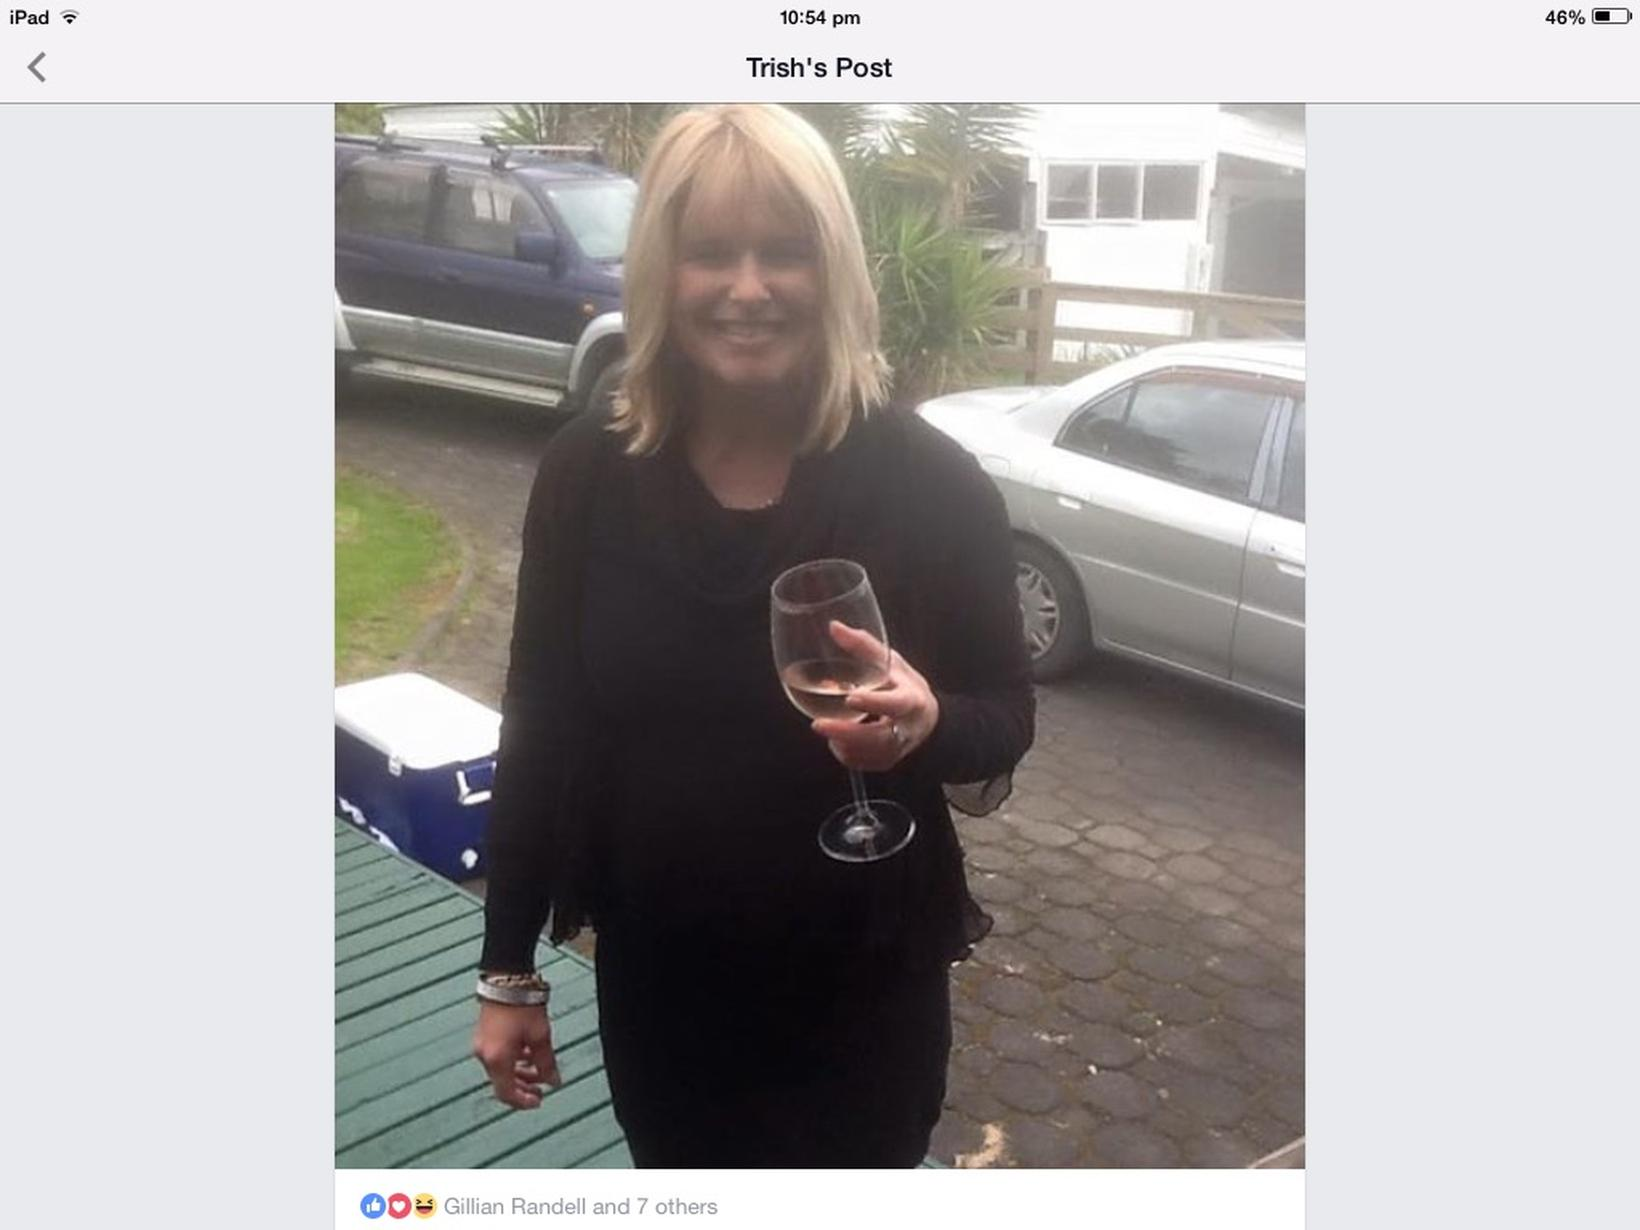 Trish from Torbay, New Zealand